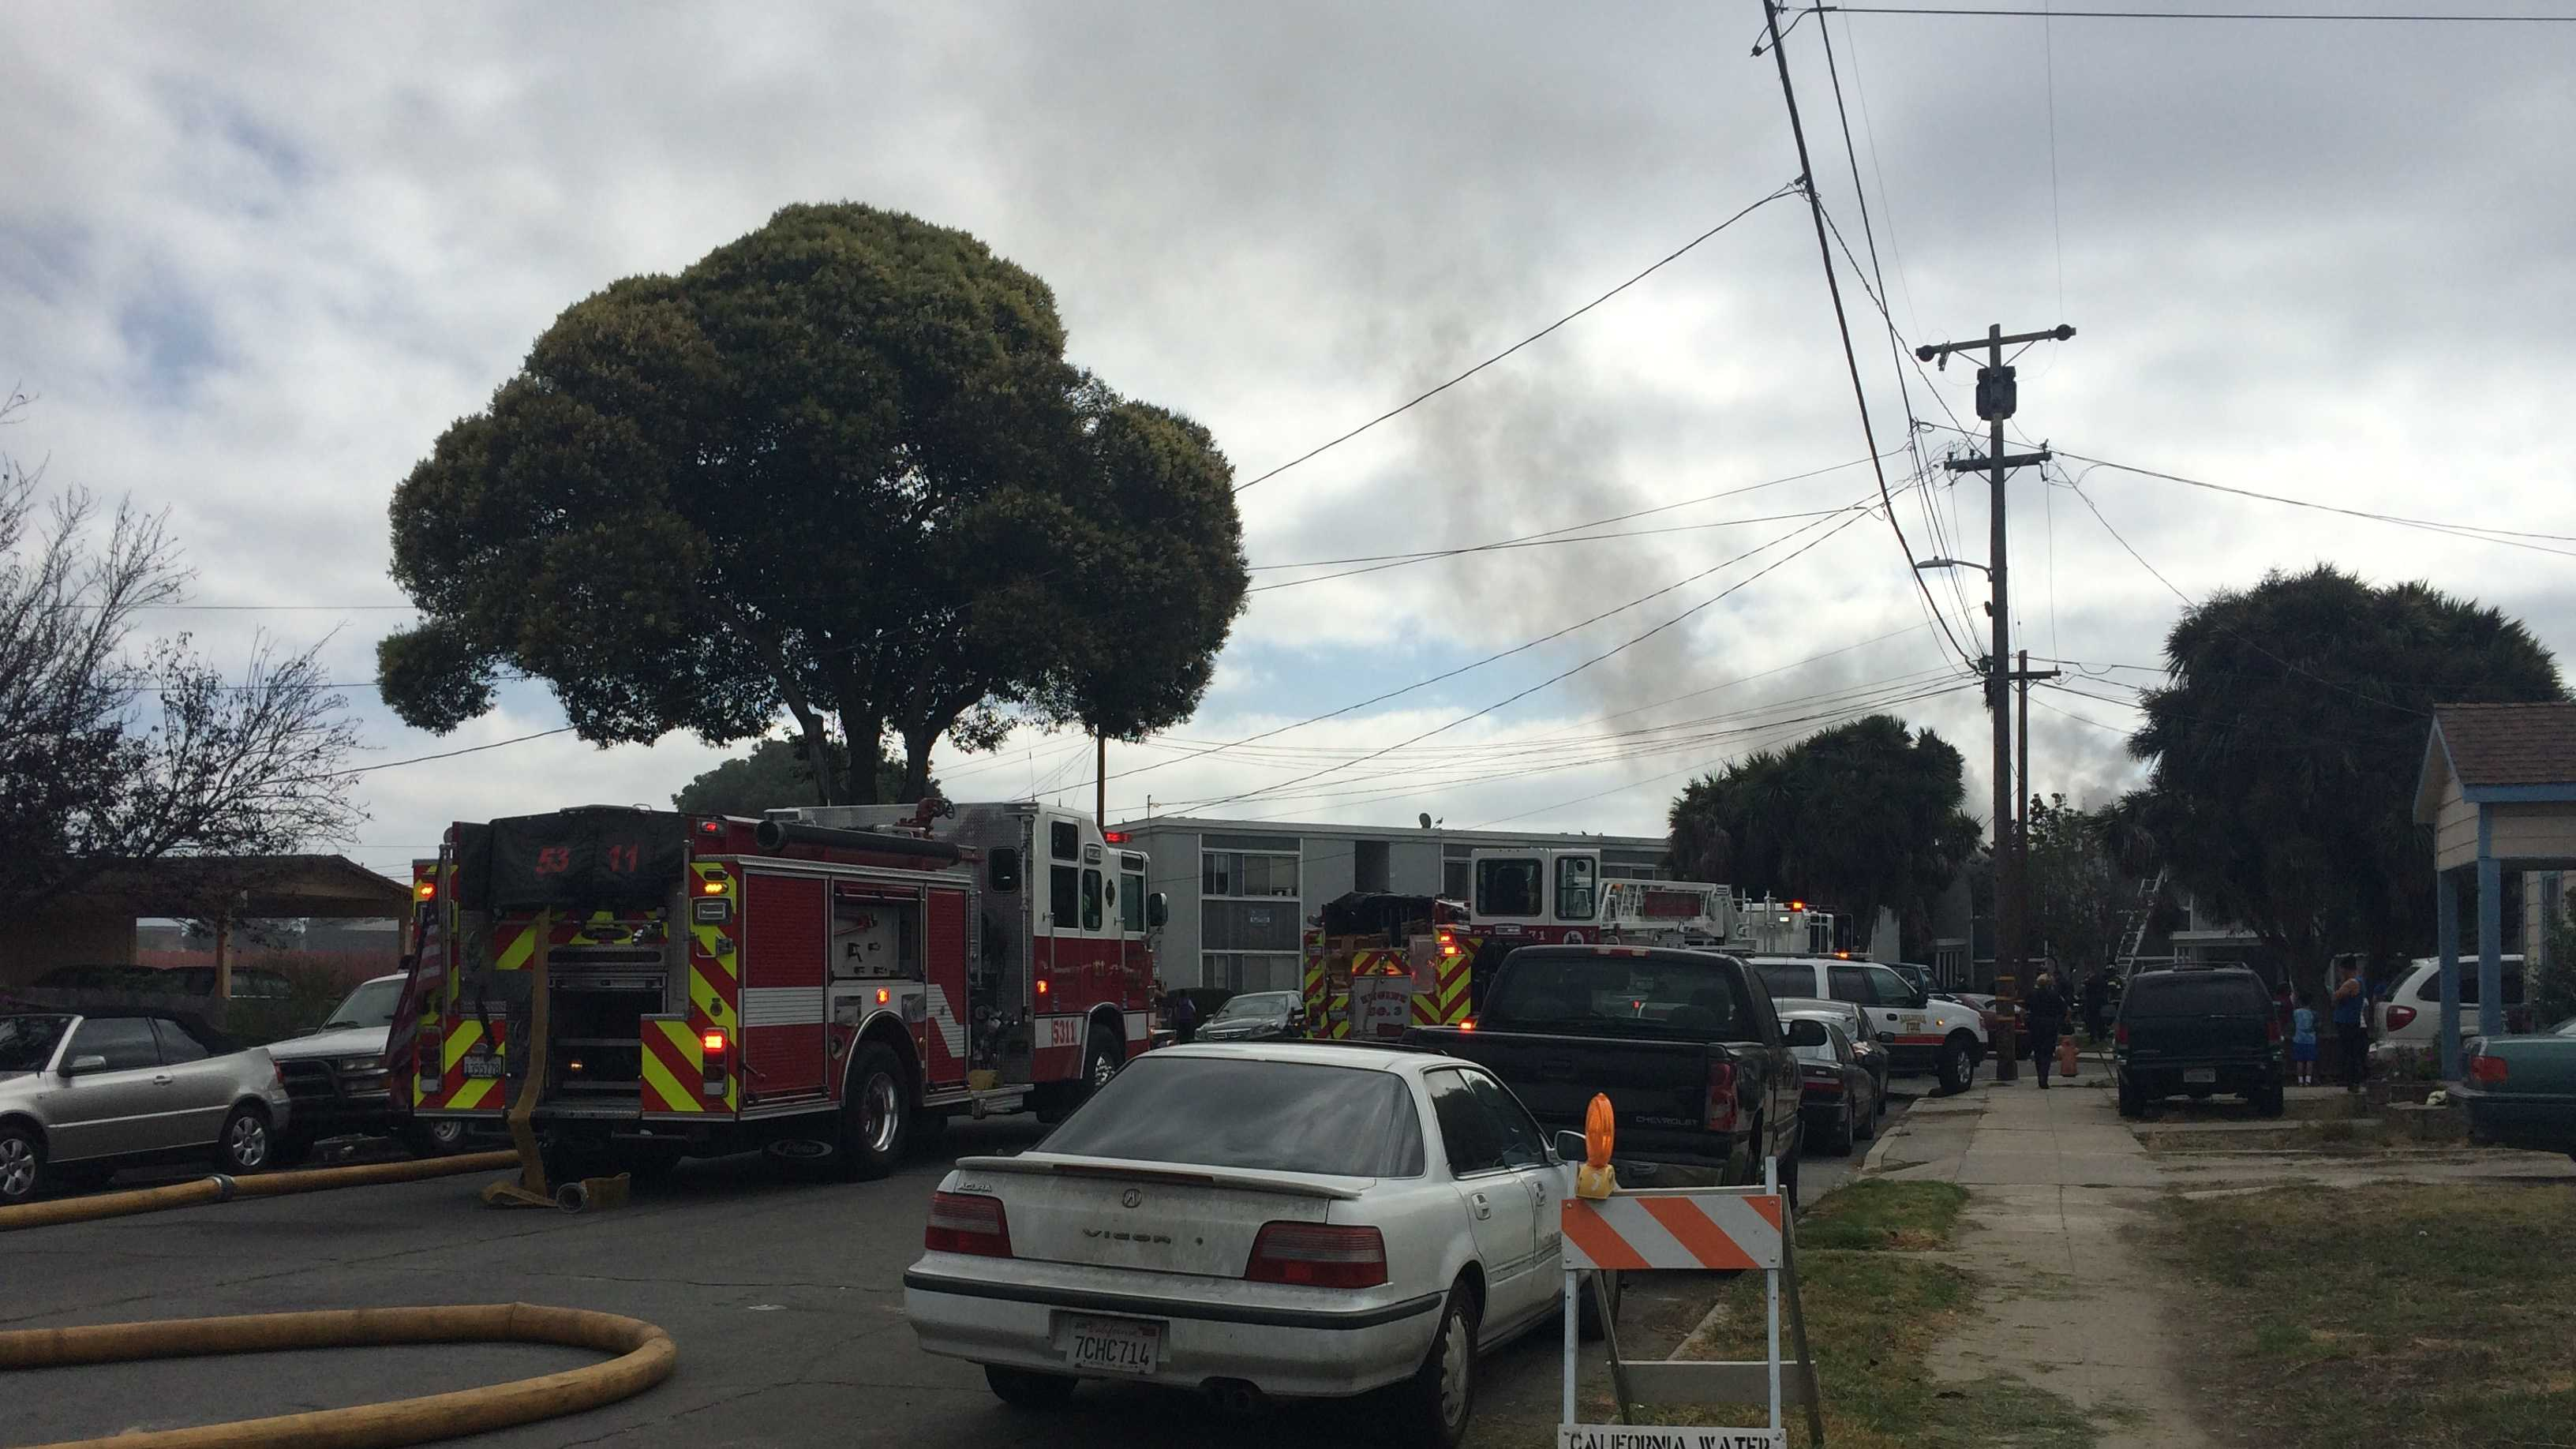 A 20-year-old man was killed in an apartment fire in south Salinas just before 10 a.m. Saturday.